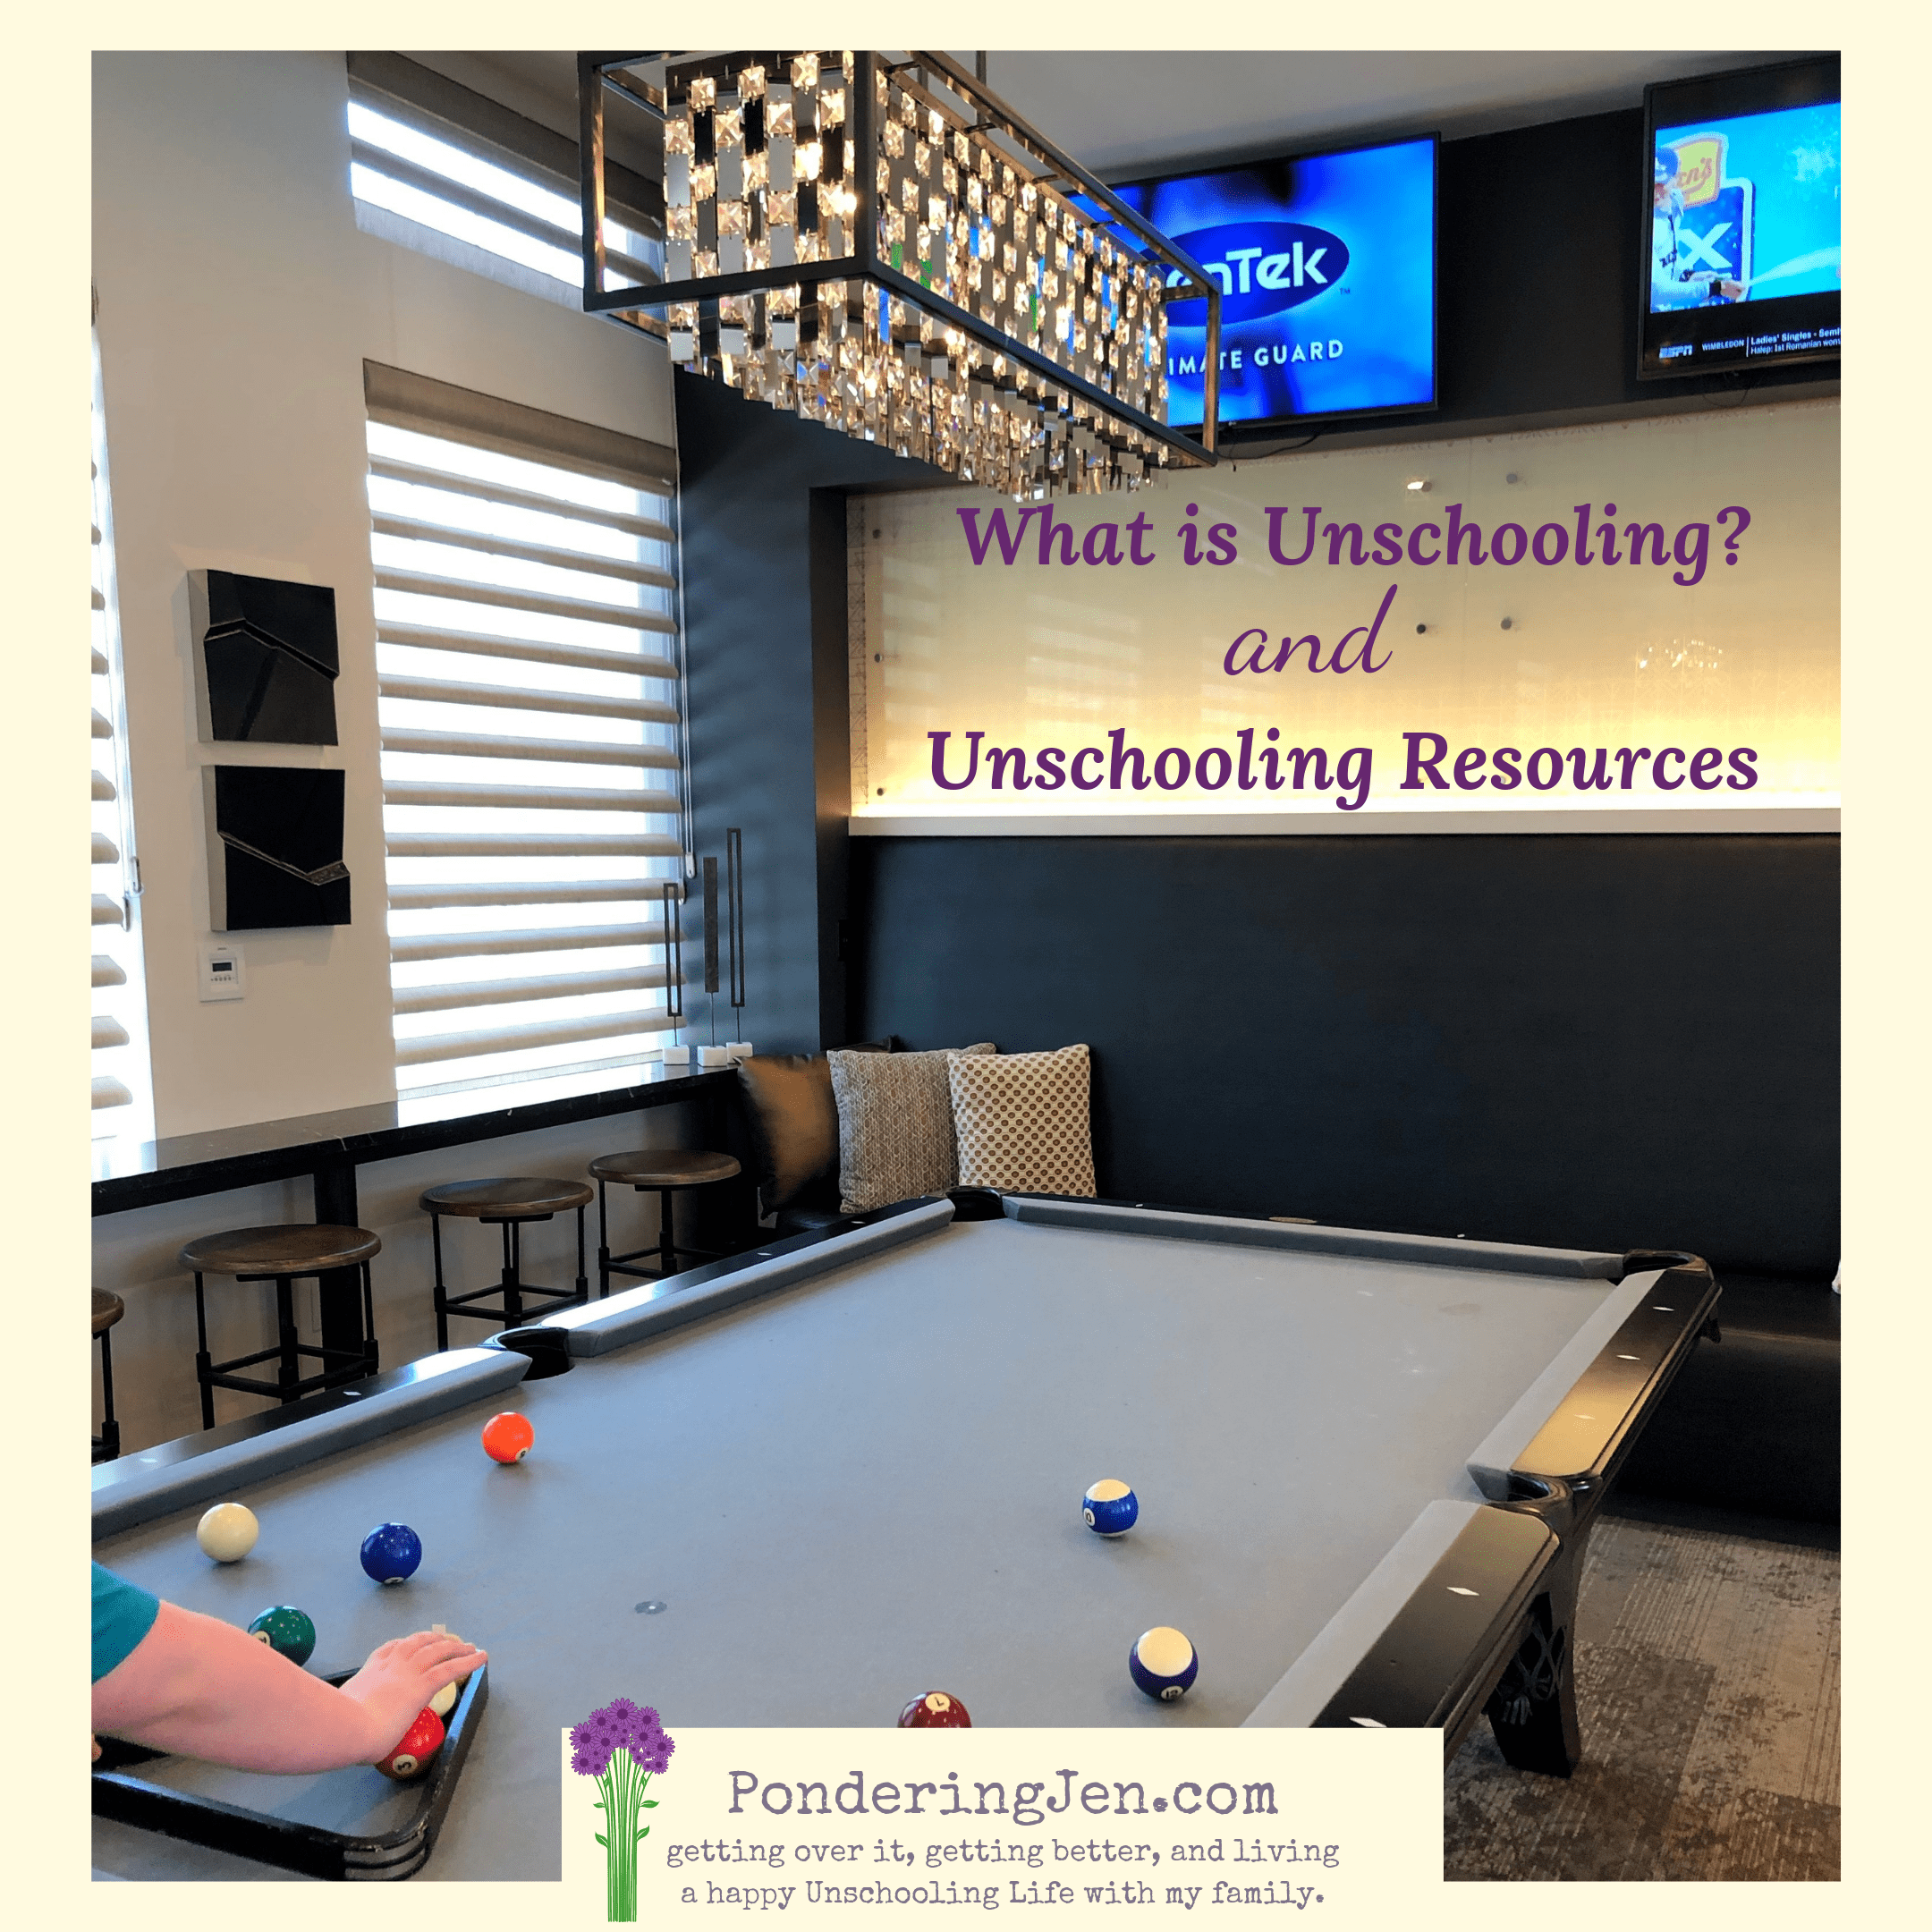 What is Unschooling and Unschooling Resources